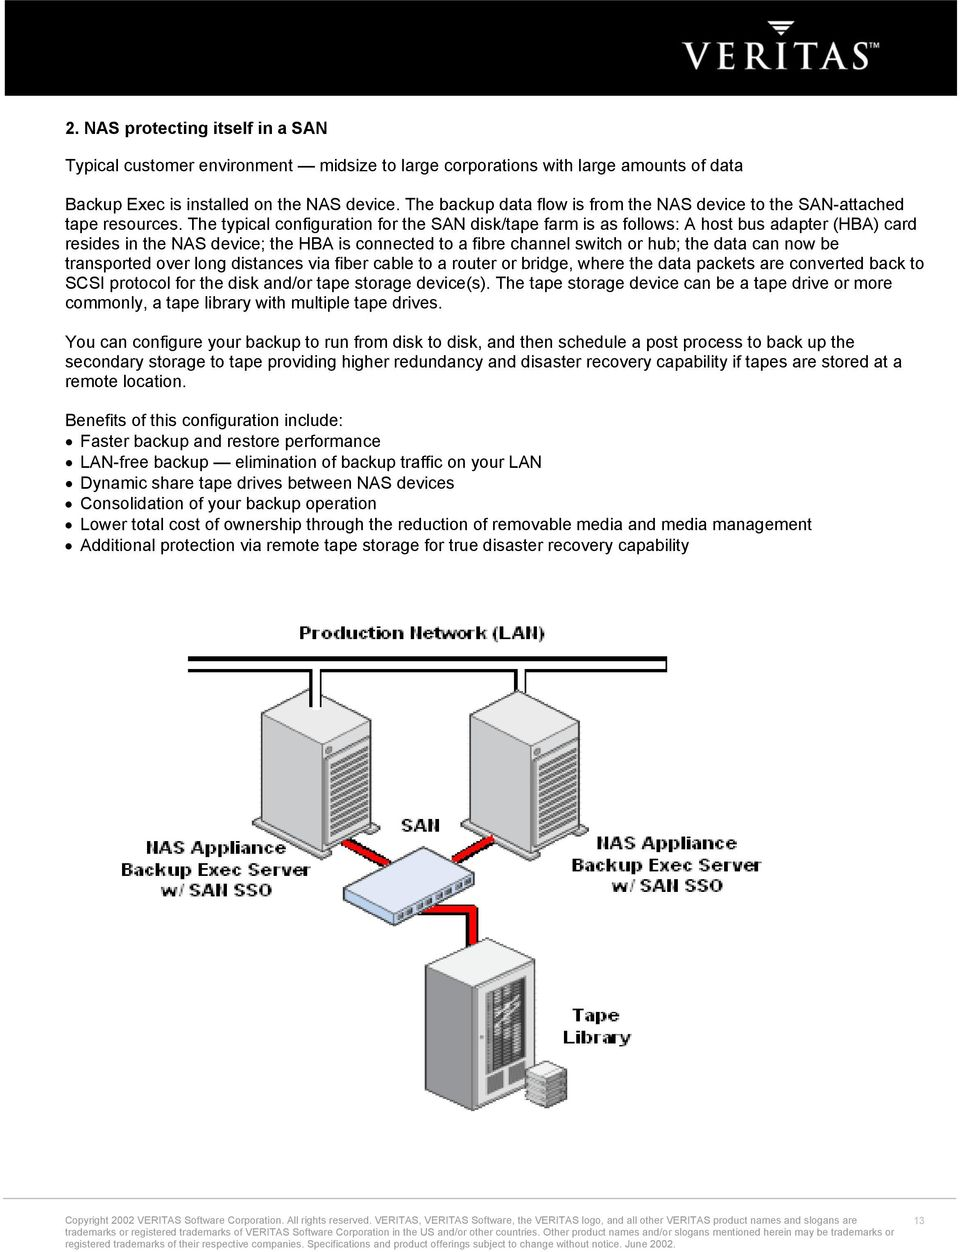 The typical configuration for the SAN disk/tape farm is as follows: A host bus adapter (HBA) card resides in the NAS device; the HBA is connected to a fibre channel switch or hub; the data can now be